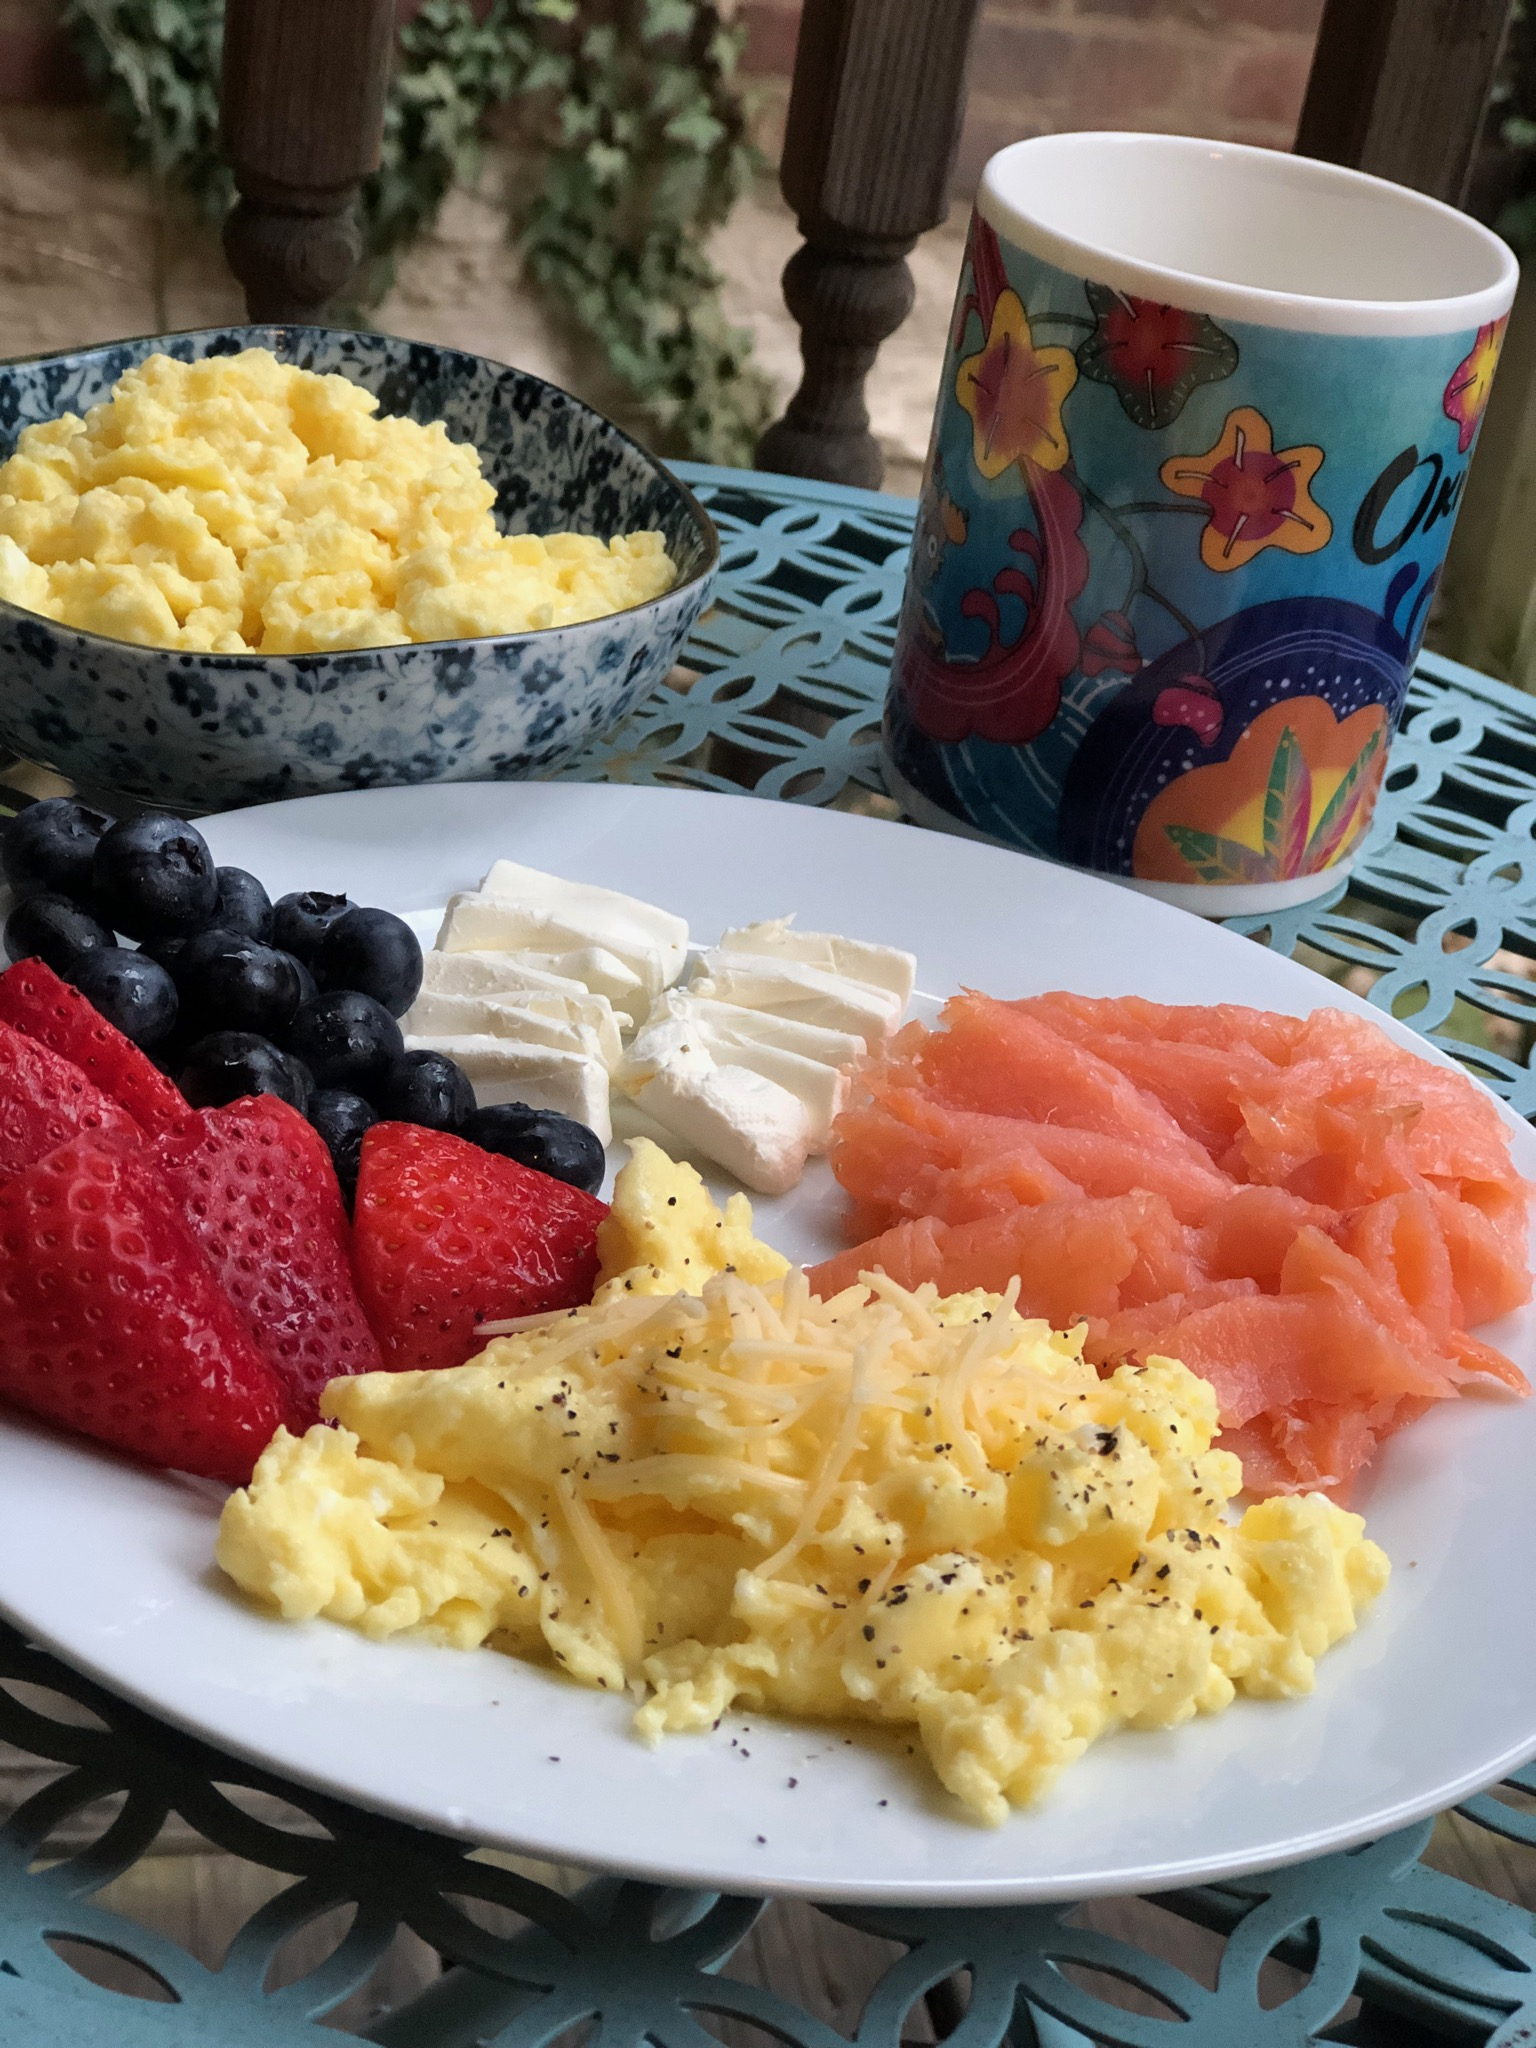 """Light and fluffy scrambled eggs are easy to make when at home or traveling!"" says Diana71. ""Everyone will love this quick energy bite to start the day. Top with pepper and shredded cheese, if desired!"""